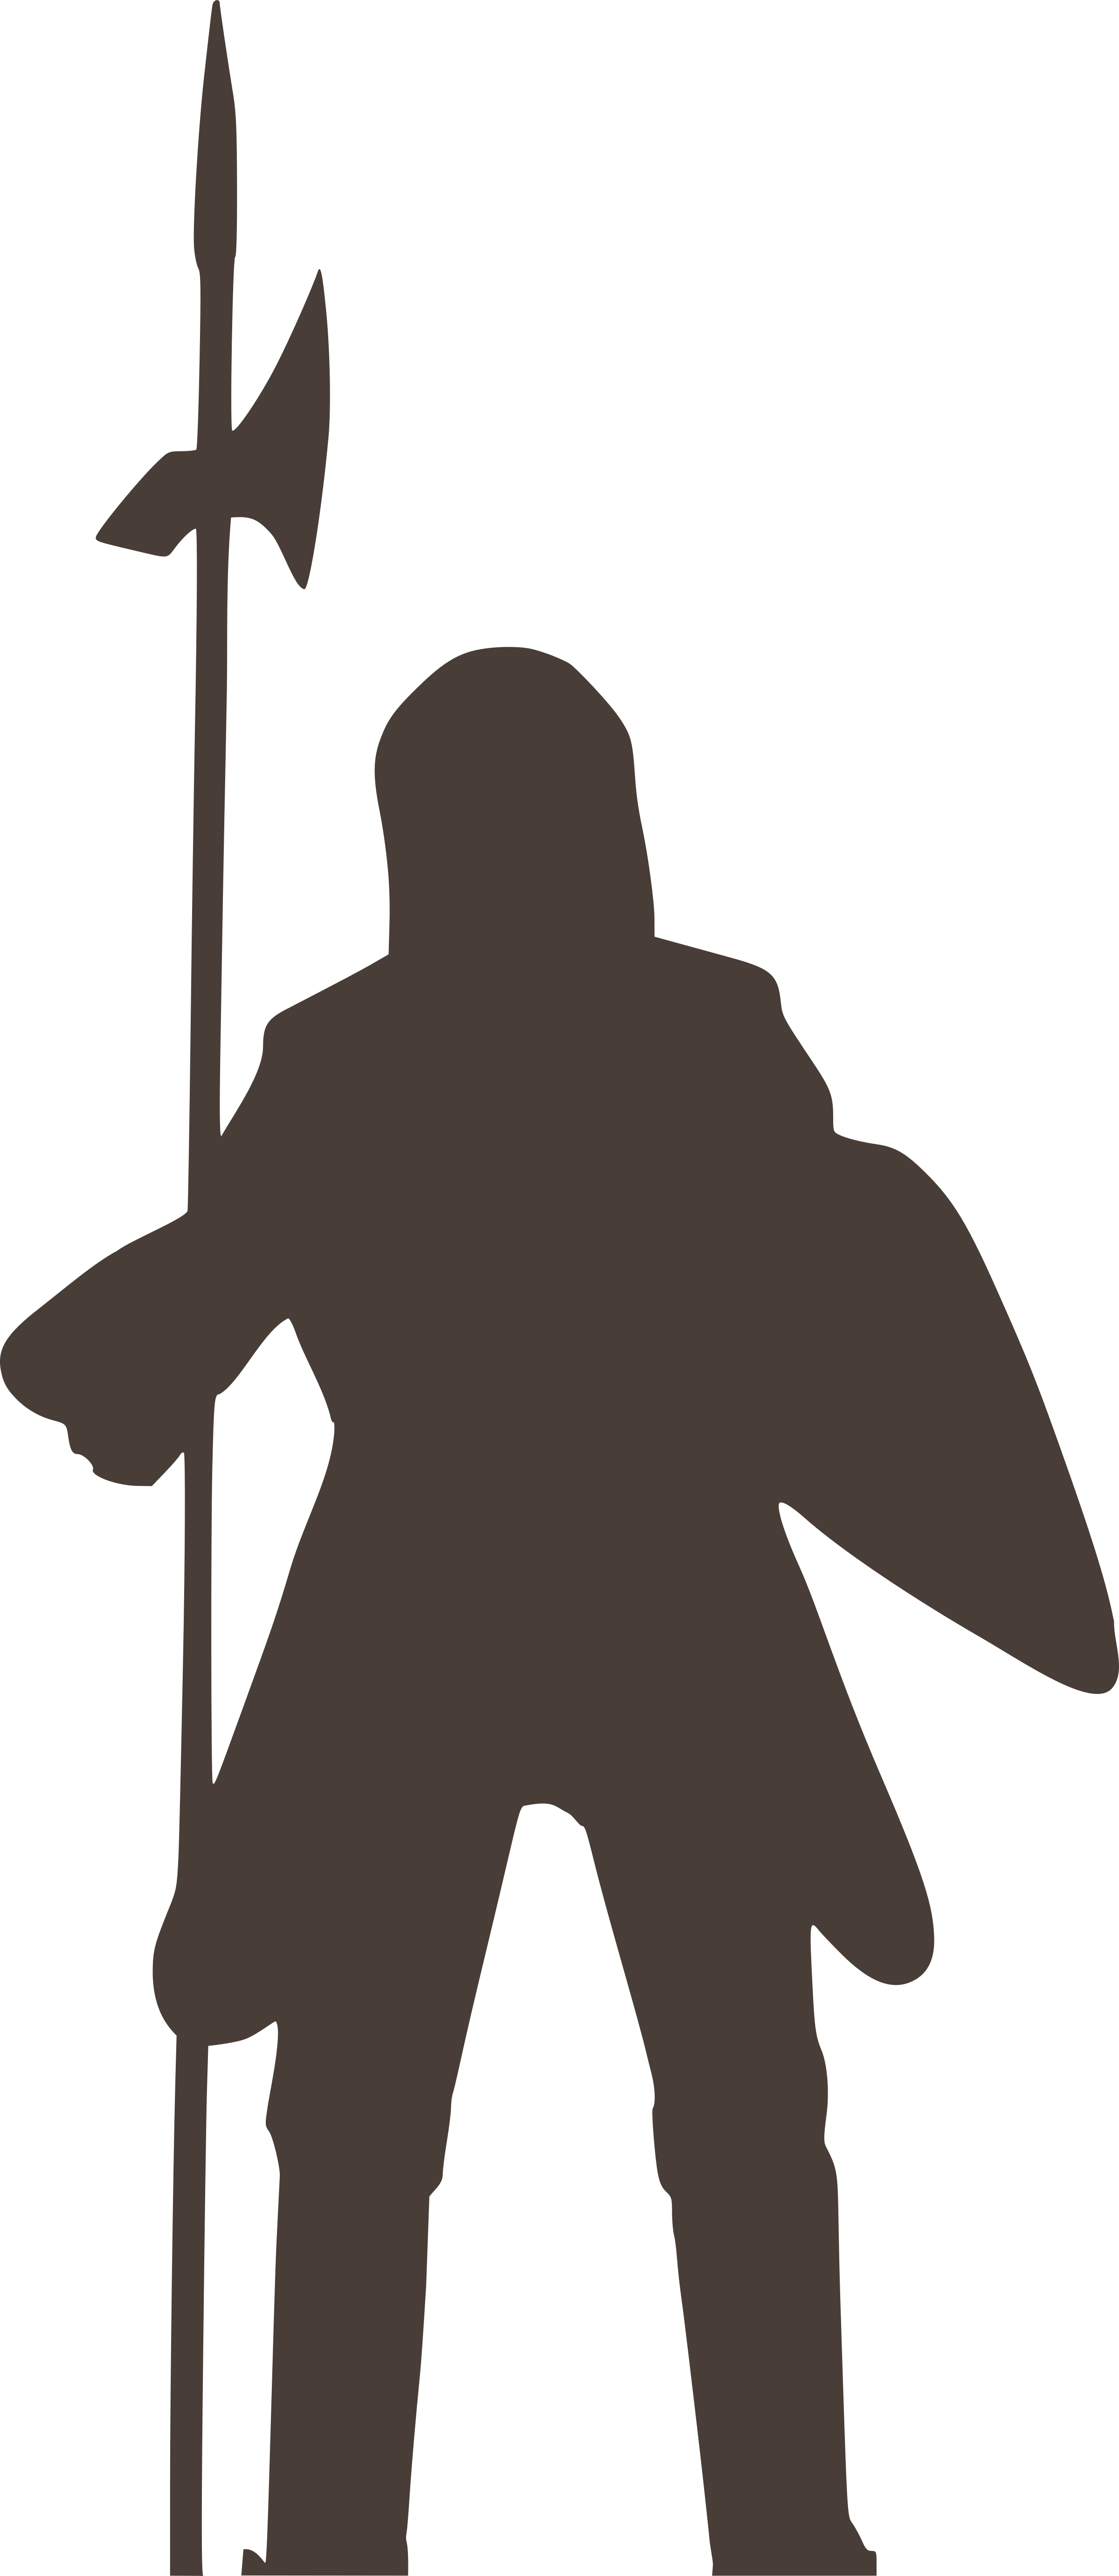 Chevalier knight big image. Knights clipart silhouette